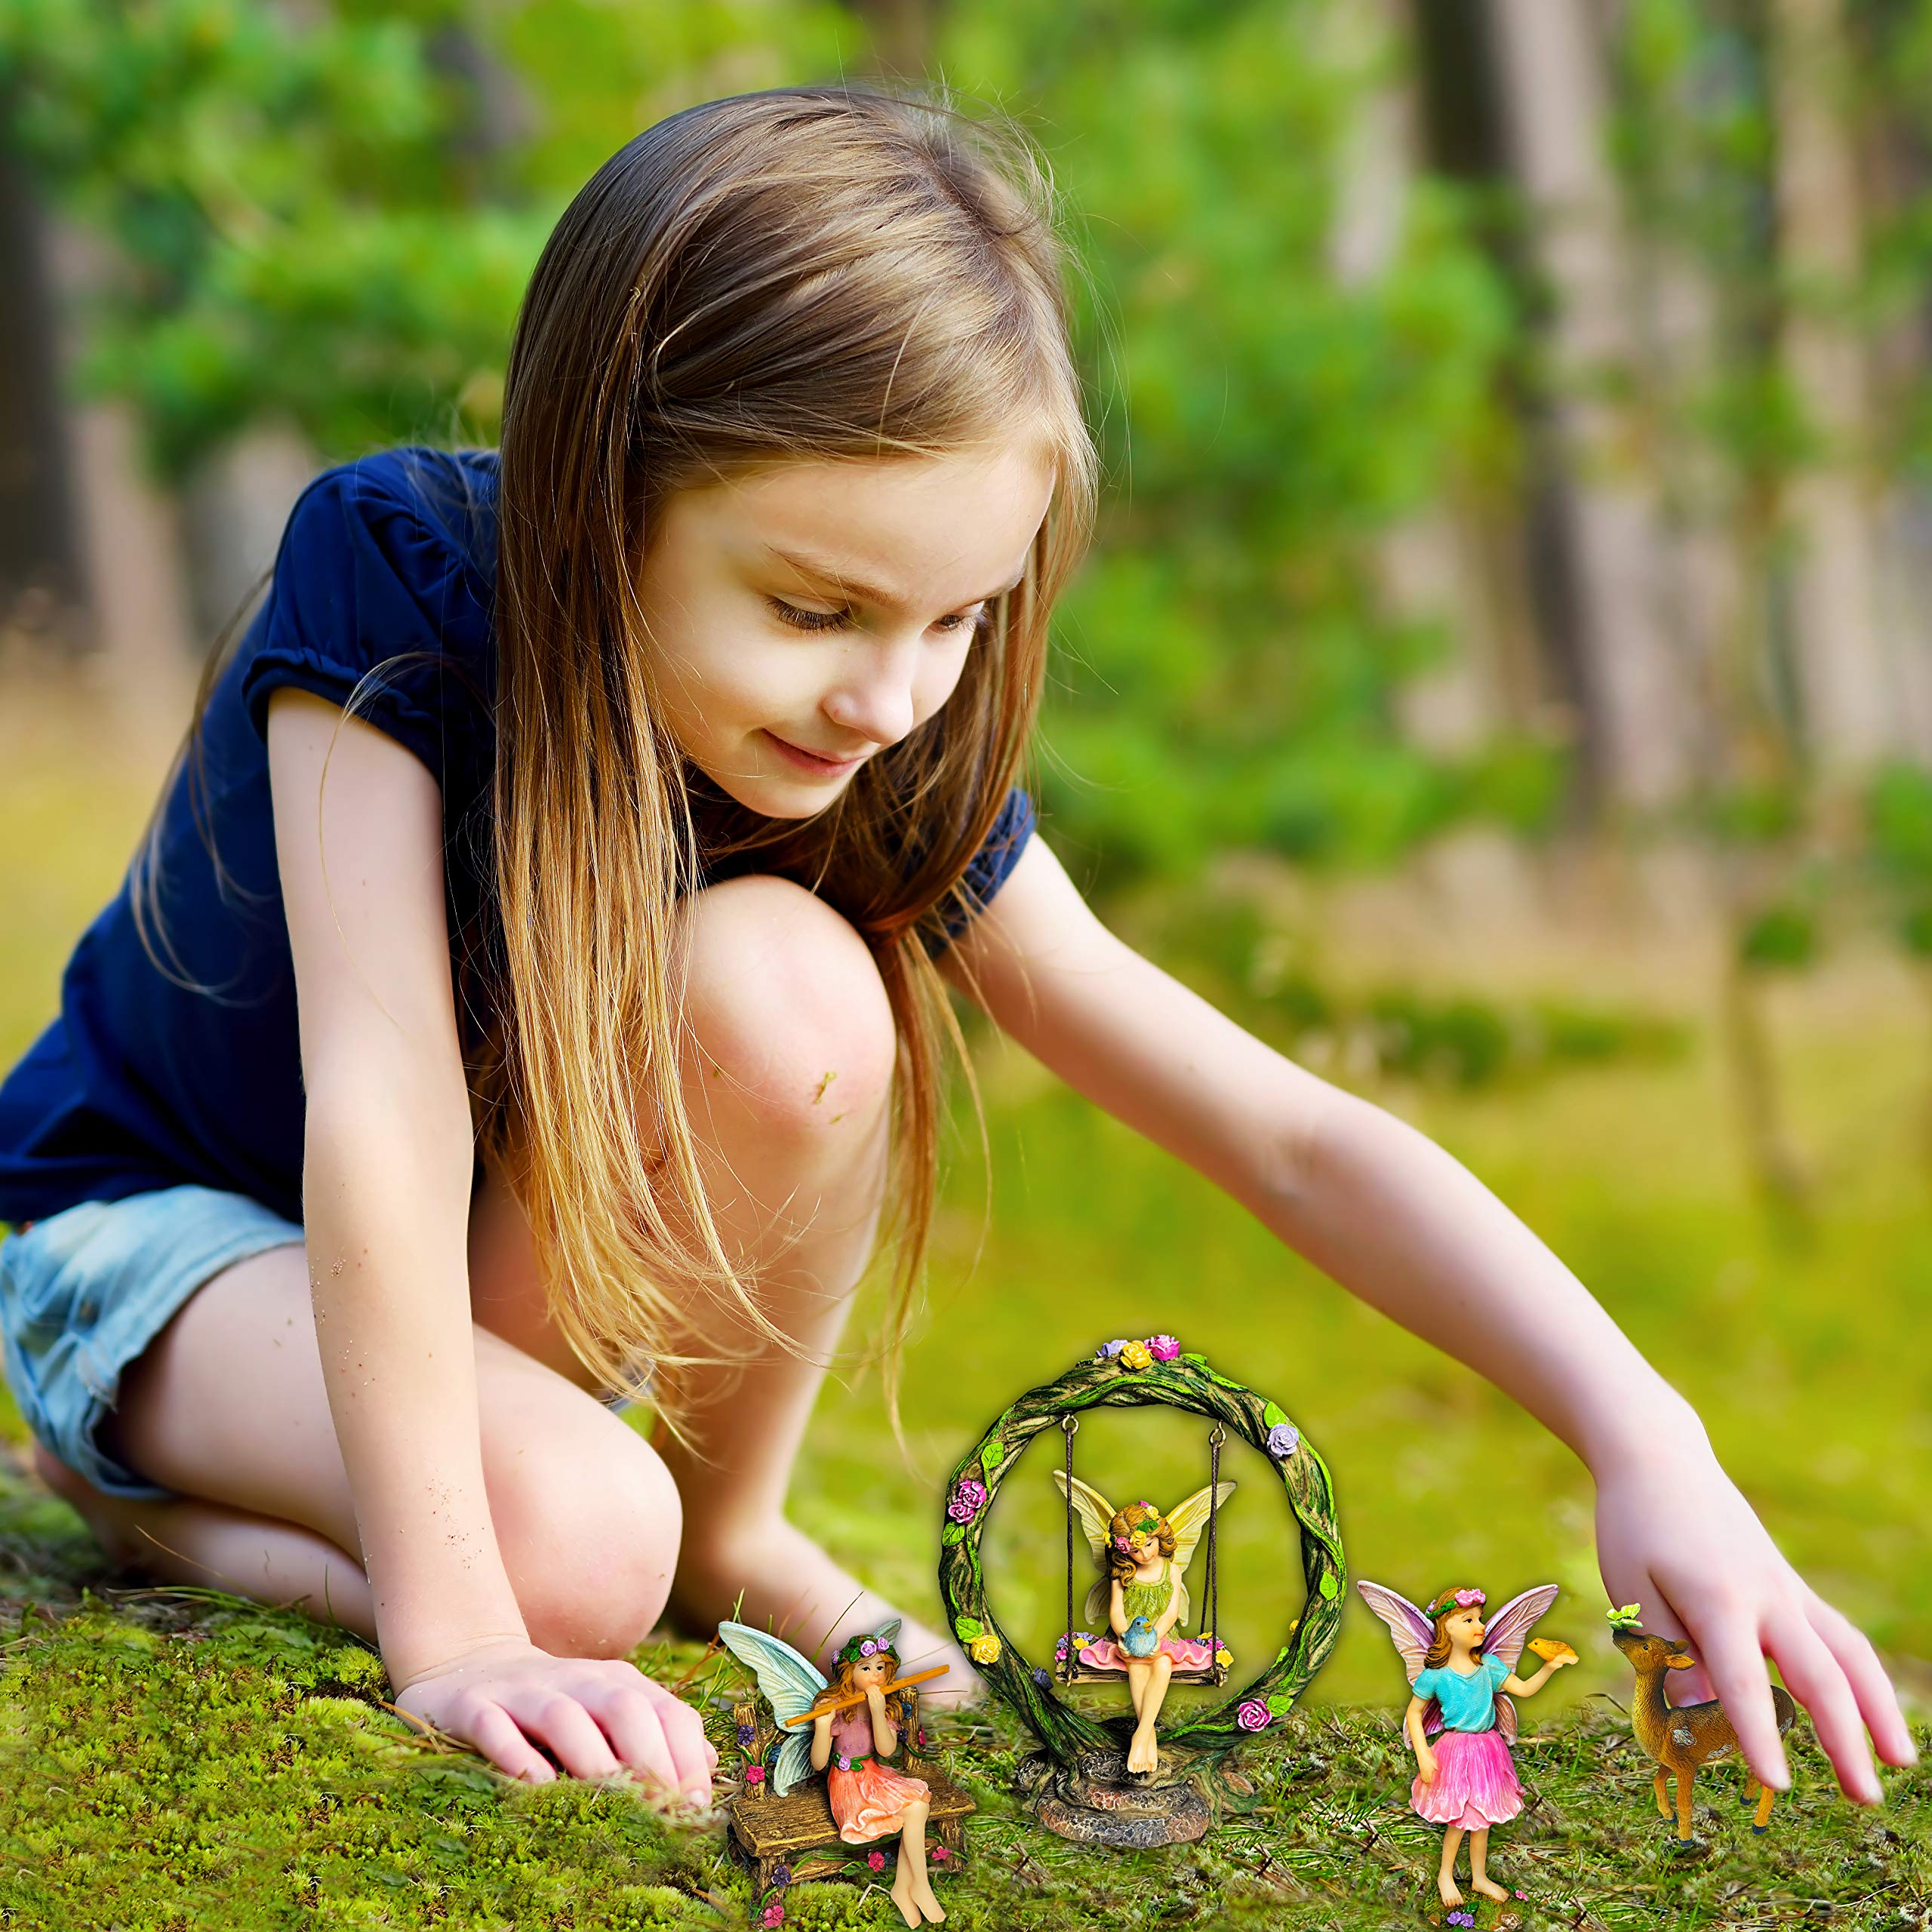 Mood Lab Fairy Garden Kit - Miniature Figurines with Accessories Swing Set of 6 pcs - Hand Painted for Outdoor or House Decor by Mood Lab (Image #8)